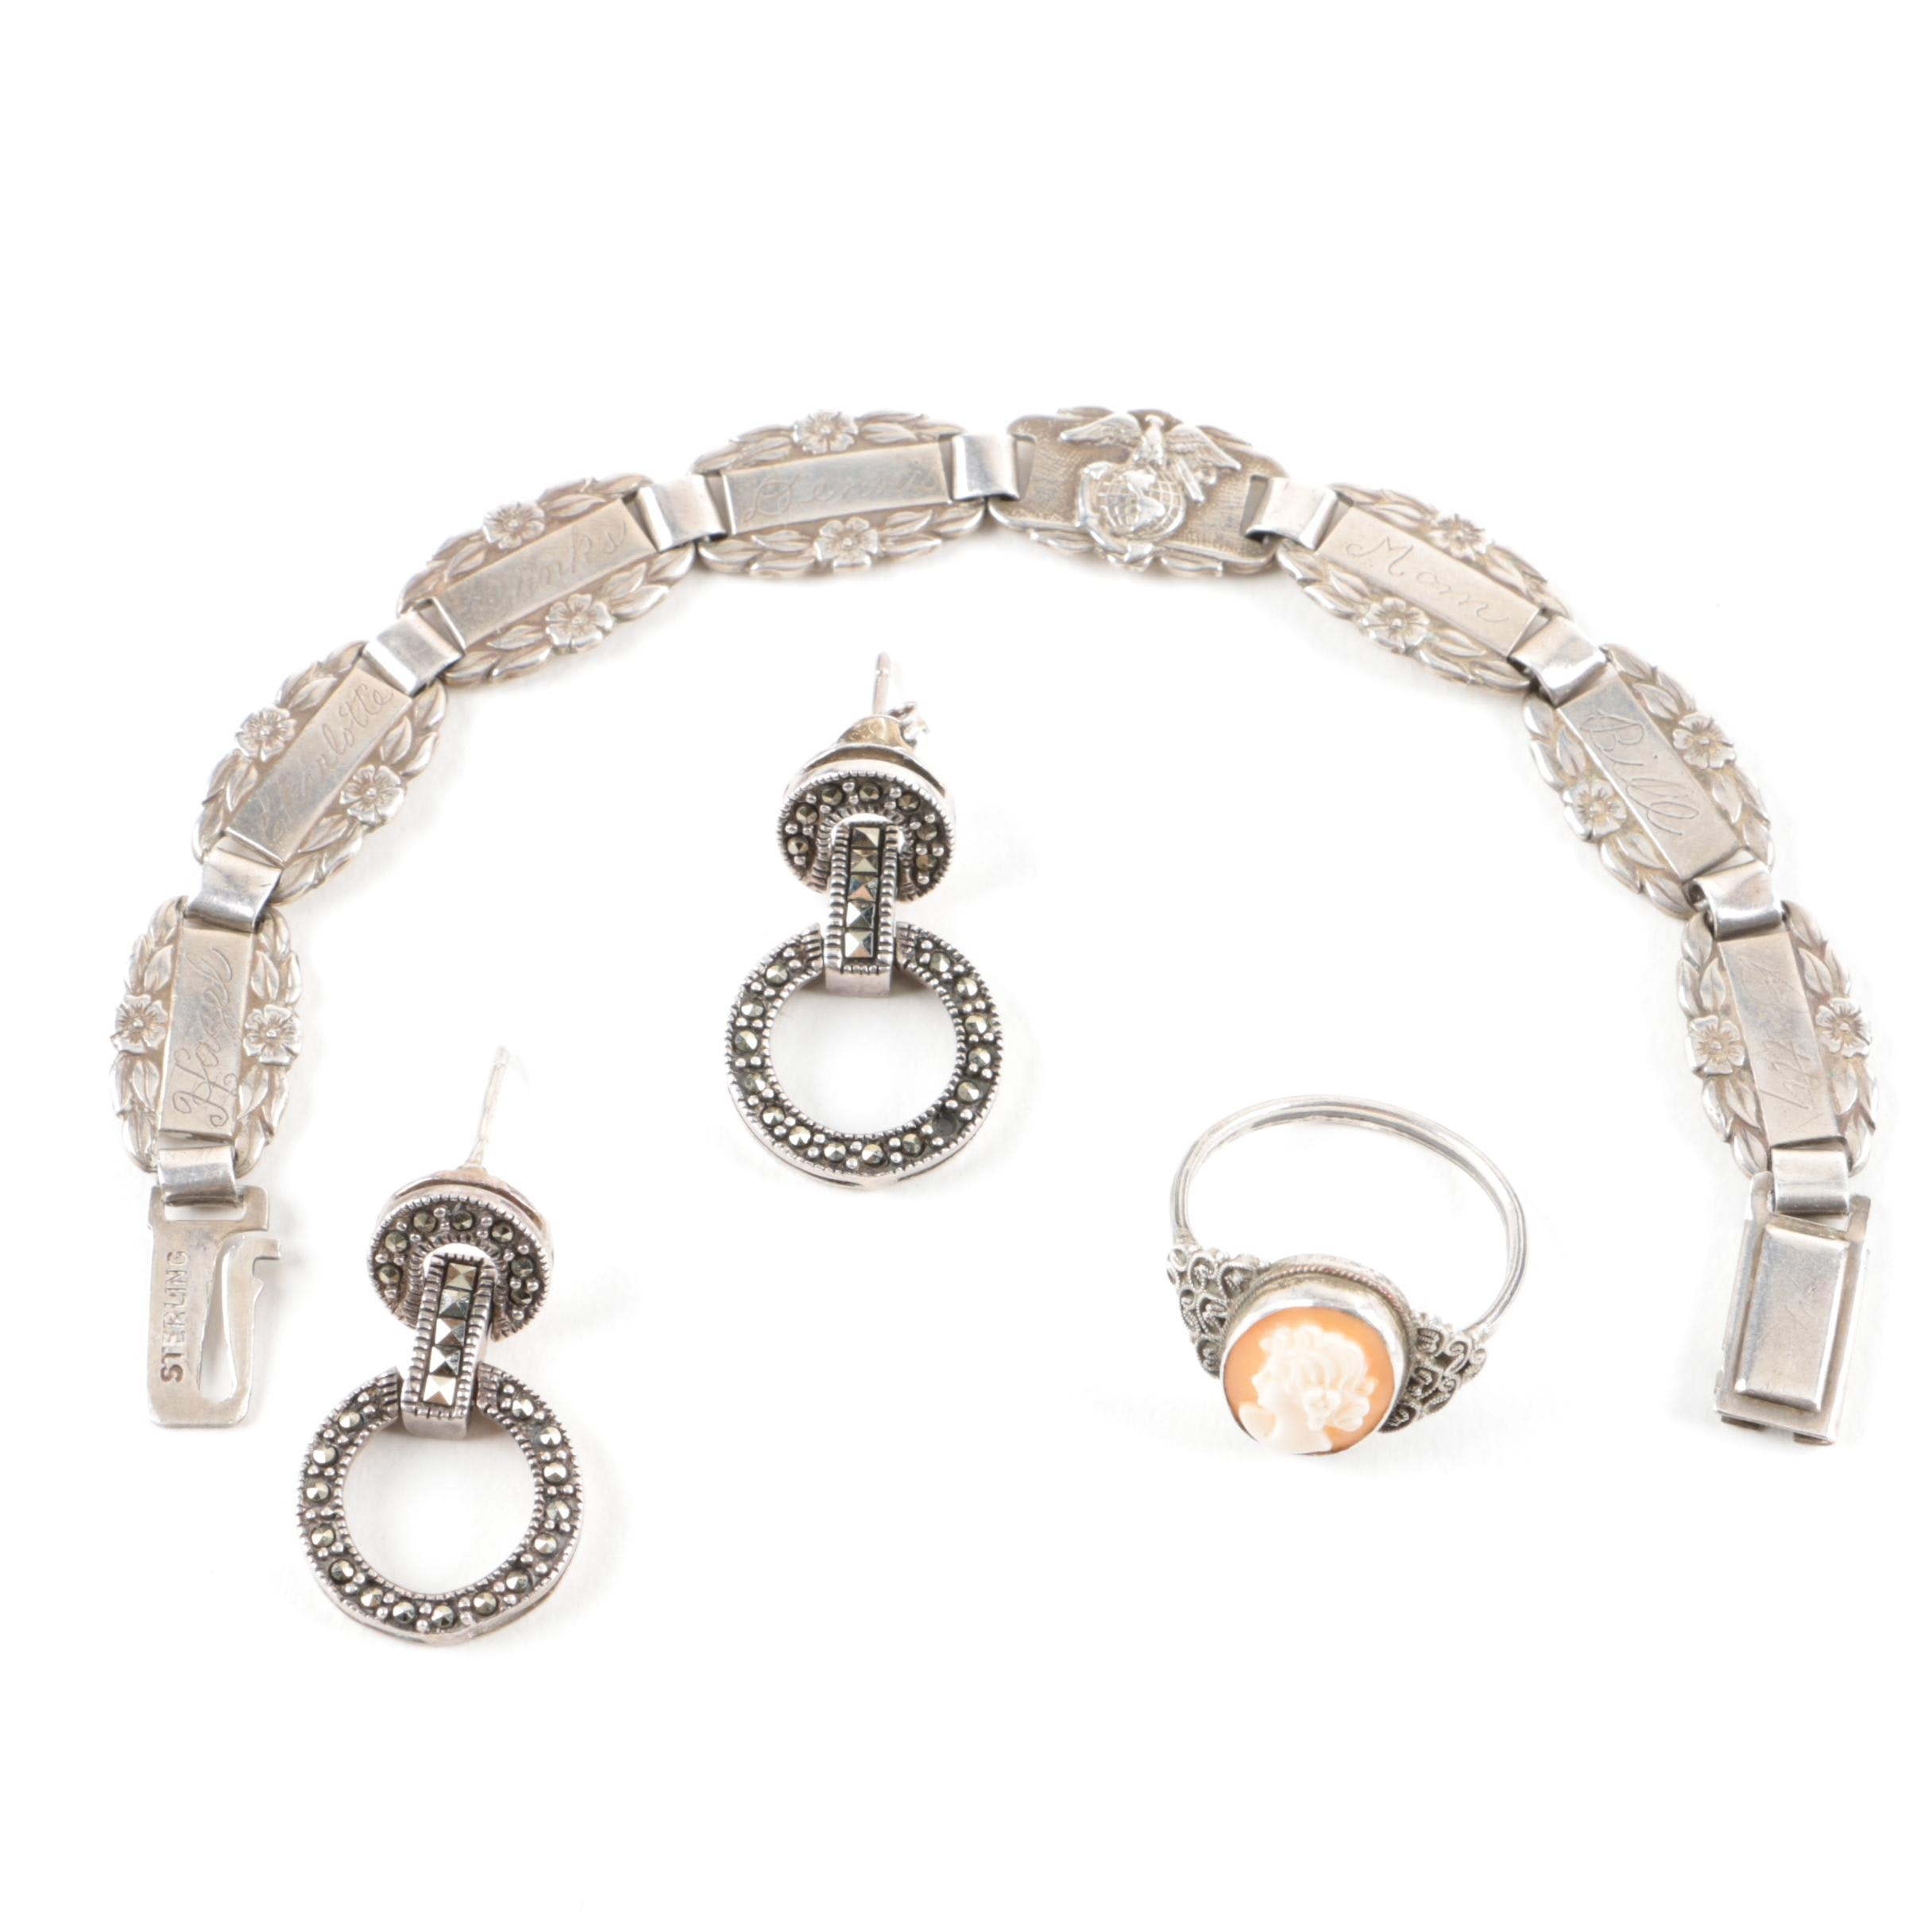 Sterling Silver Jewelry Including a Forget-Me-Not bracelet